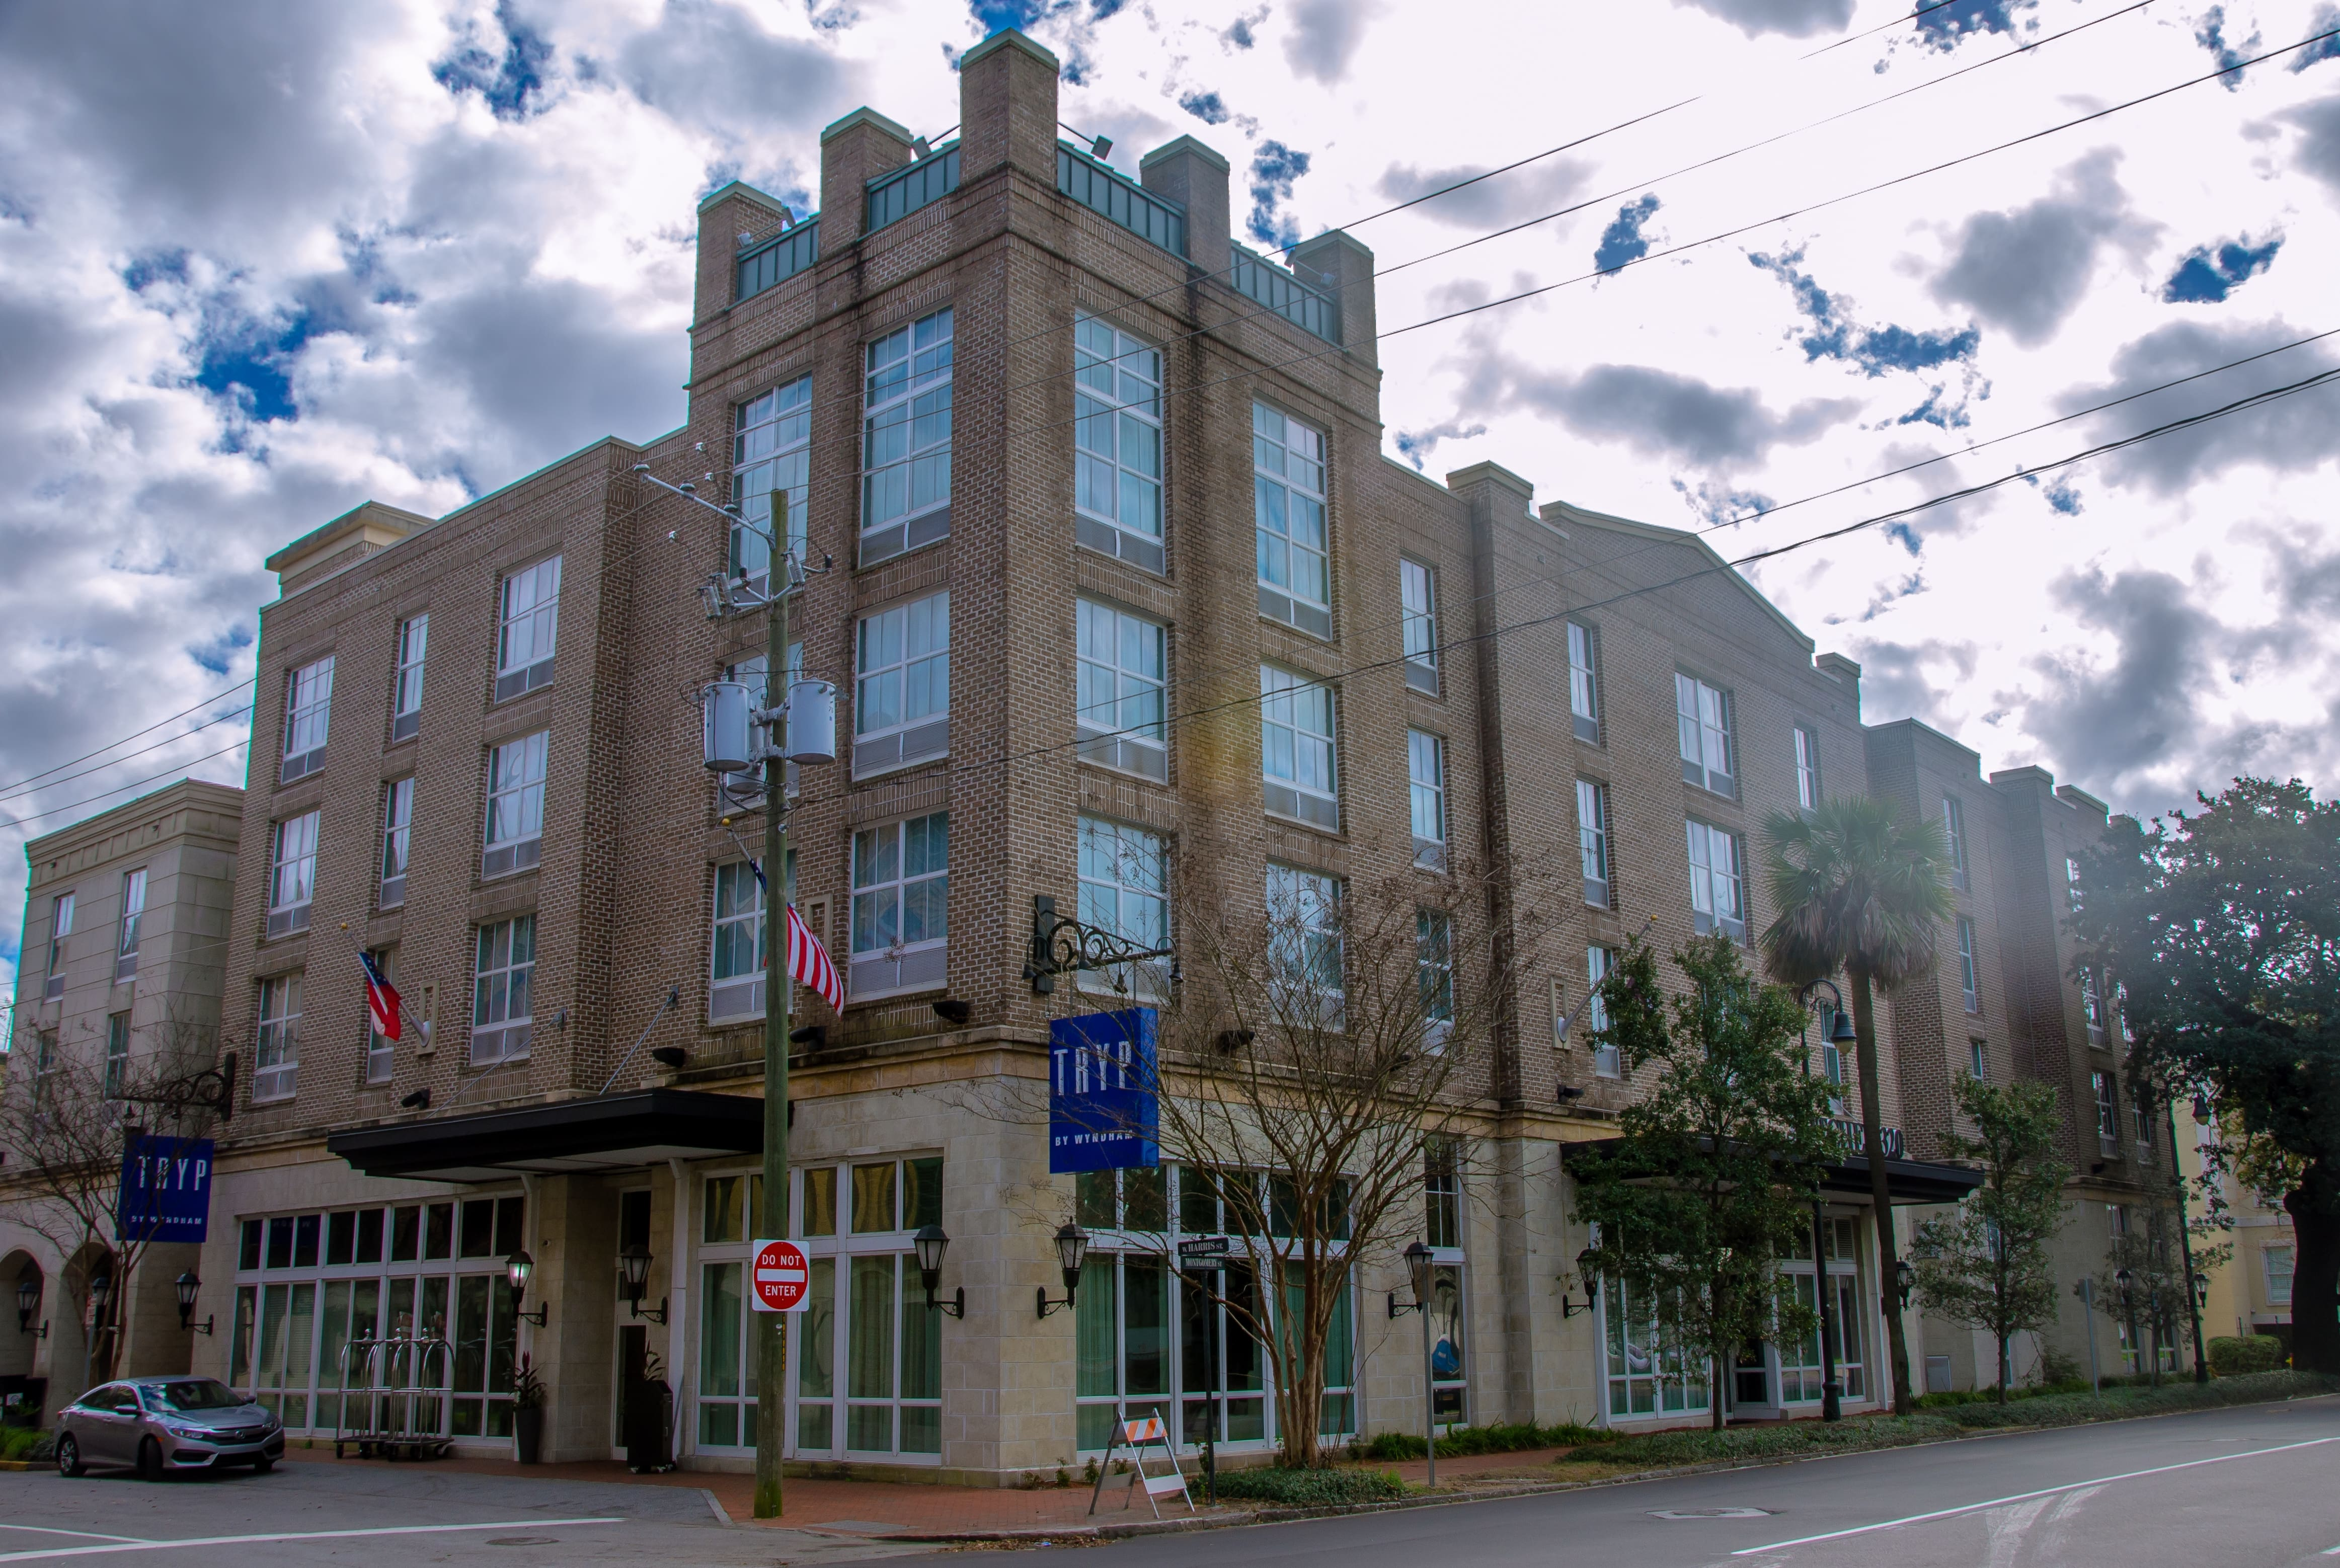 TRYP by Wyndham Savannah Downtown/Historic District ... Savannah Map Historic District on seoul airport map, galapagos islands map, chicago o'hare airport map, shreveport airport map, nacogdoches tx map, bibb county ga map, savanna illinois city map, charleston on us map, bonaventure cemetery map, tybee island map, beantown trolley tour map, salt lake city airport map, pickwick landing state park map, downtown augusta ga map, vintage world map, forsyth park map, city of keller texas map, ardsley park map, georgia map, atlanta map,